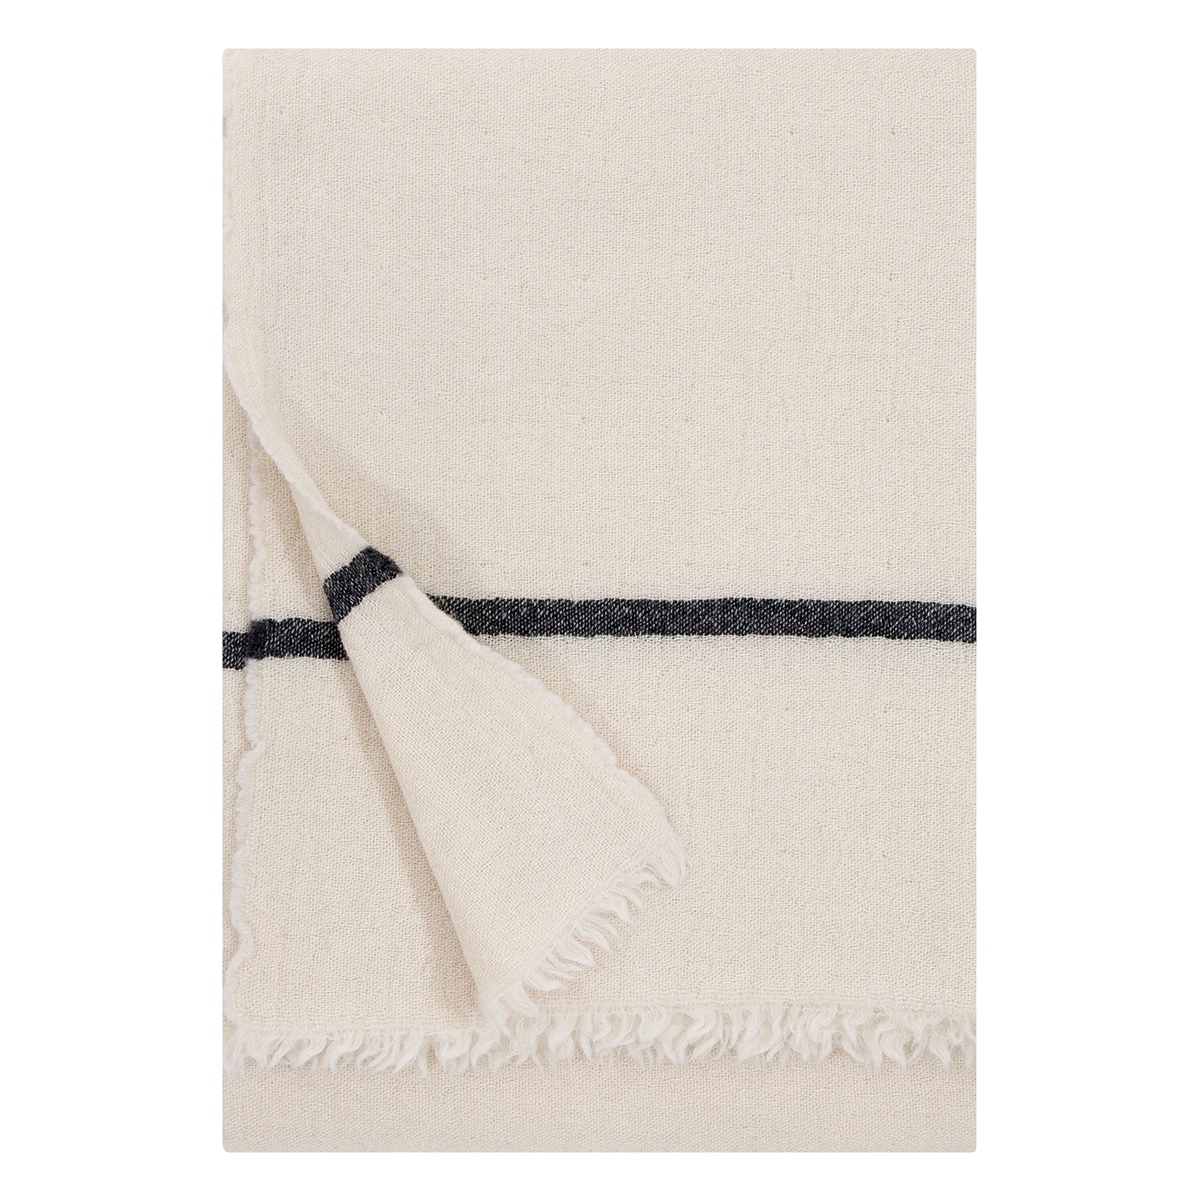 lapuankankurit_tanhu_blanket_white-black (2)